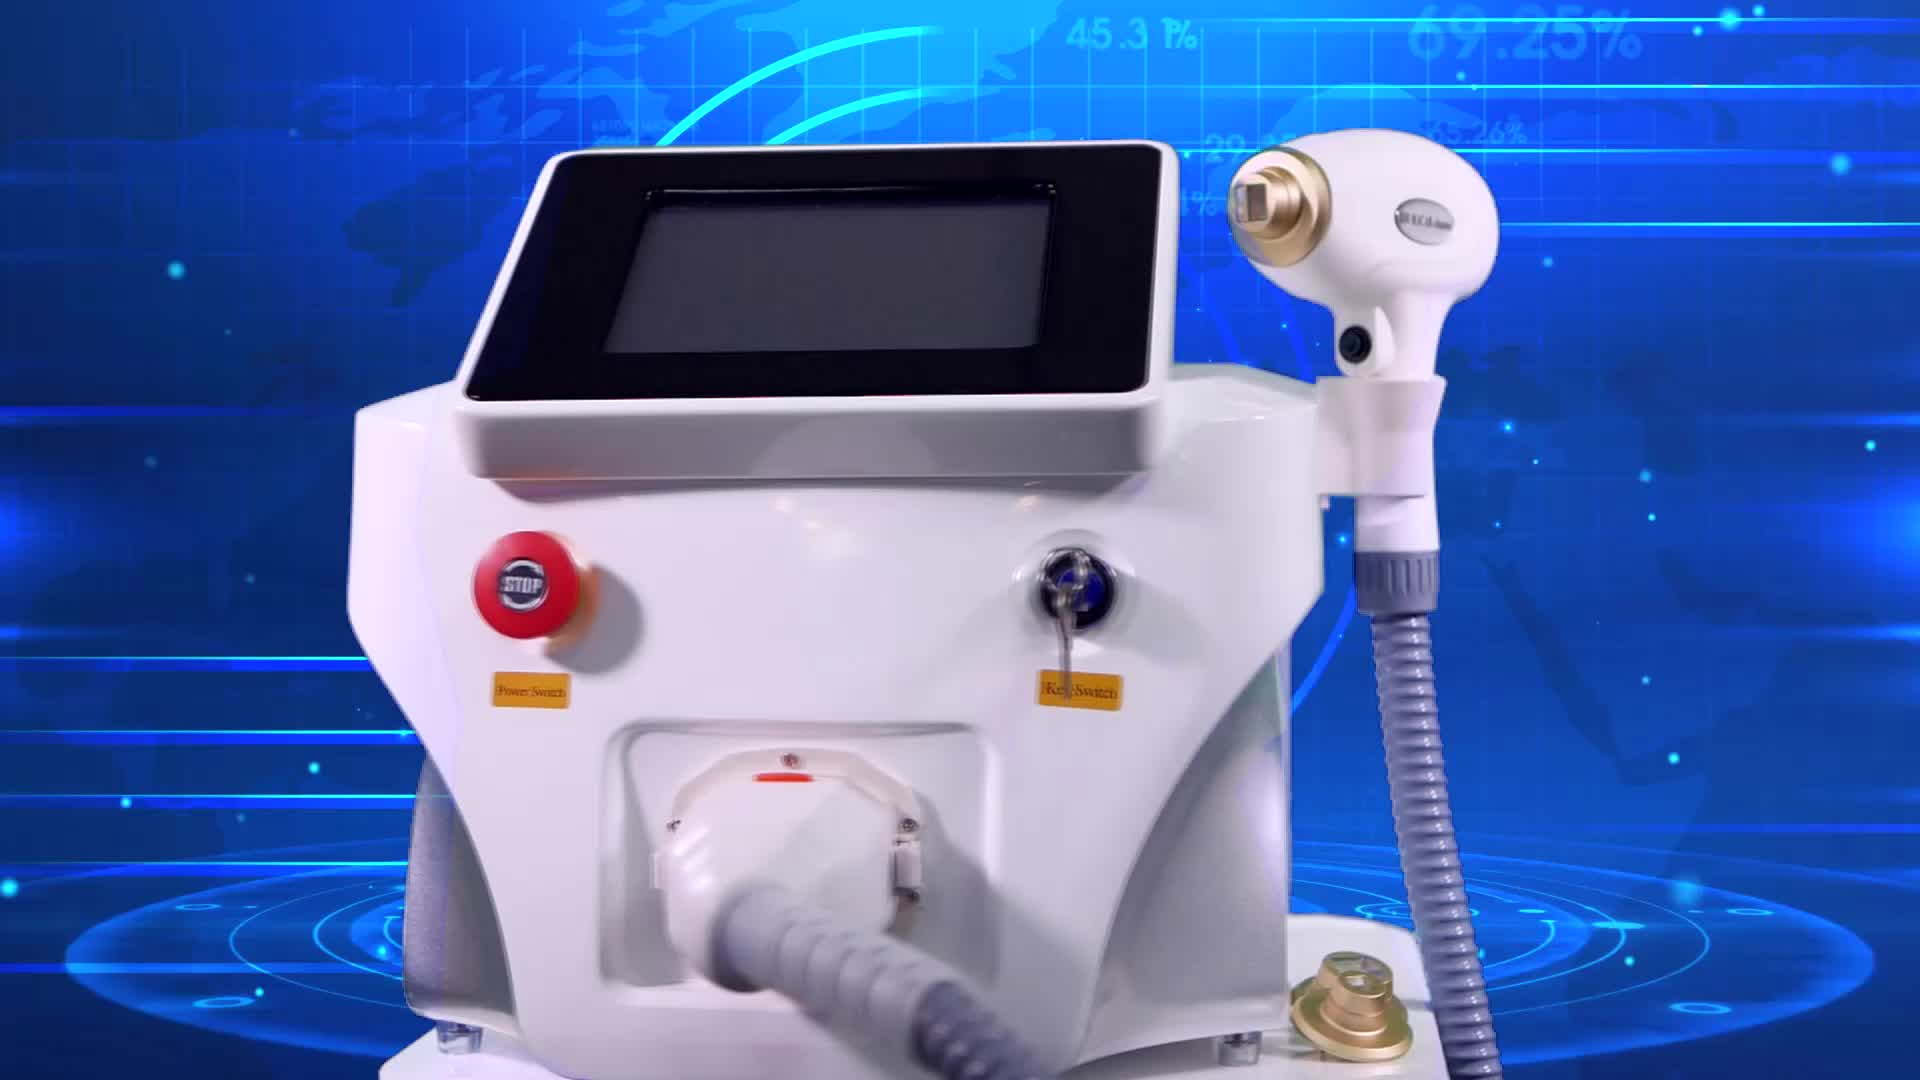 Unique Shell Hair Removal  808nm Diode Laser Home Laser Hair Removal Machine With Skin Rejuvenation Laser